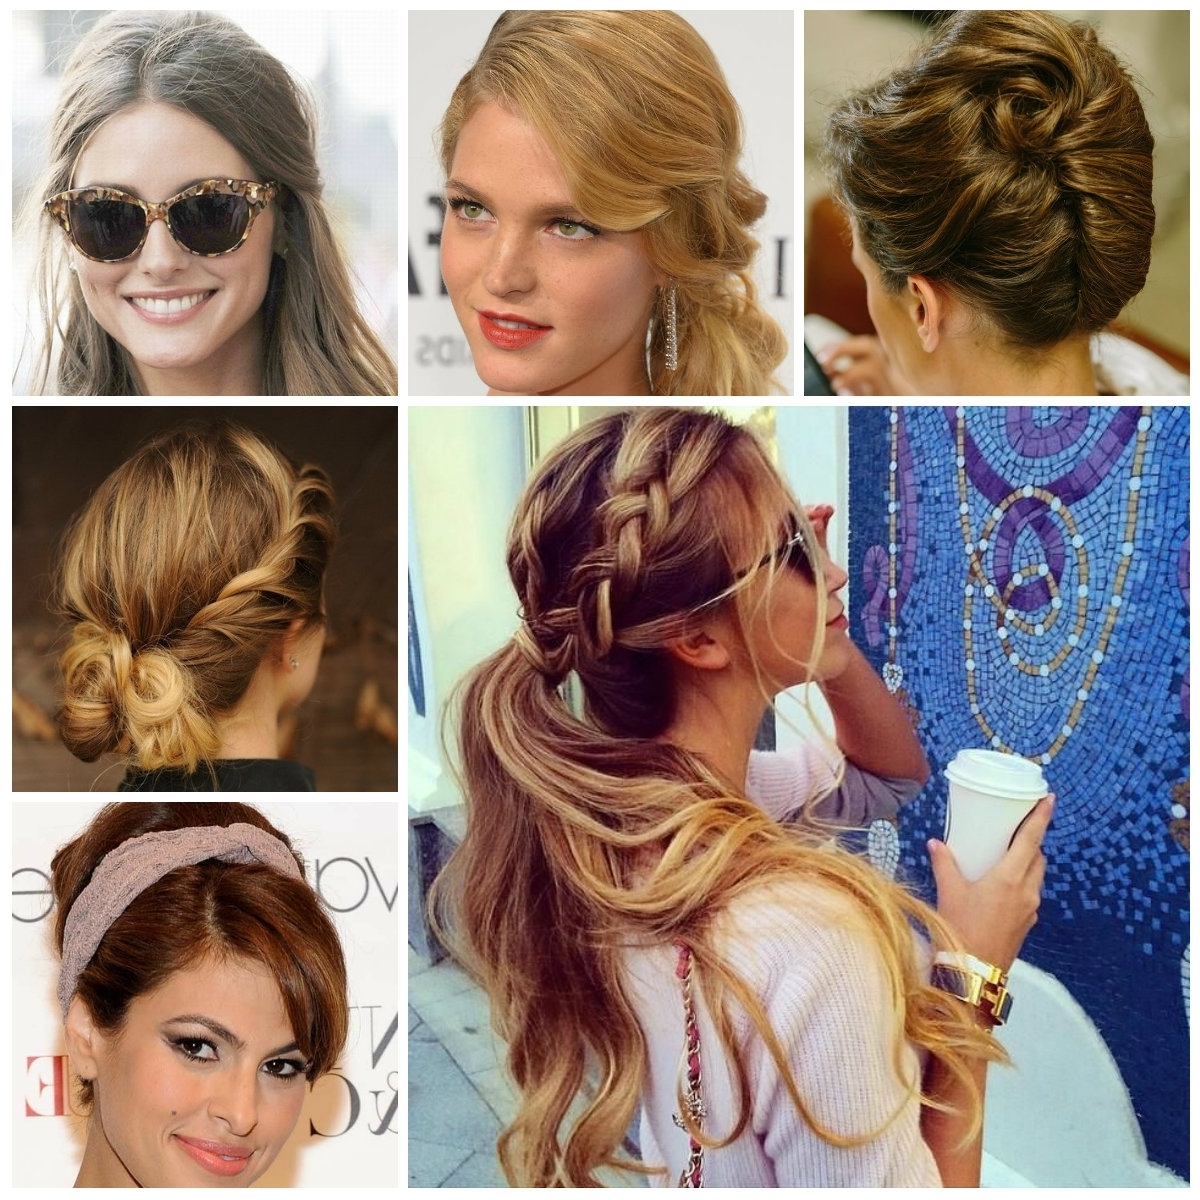 Easy Casual Updo Hairstyles For Long Hair – Women Medium Haircut With Regard To Easiest Updo Hairstyles (View 11 of 15)